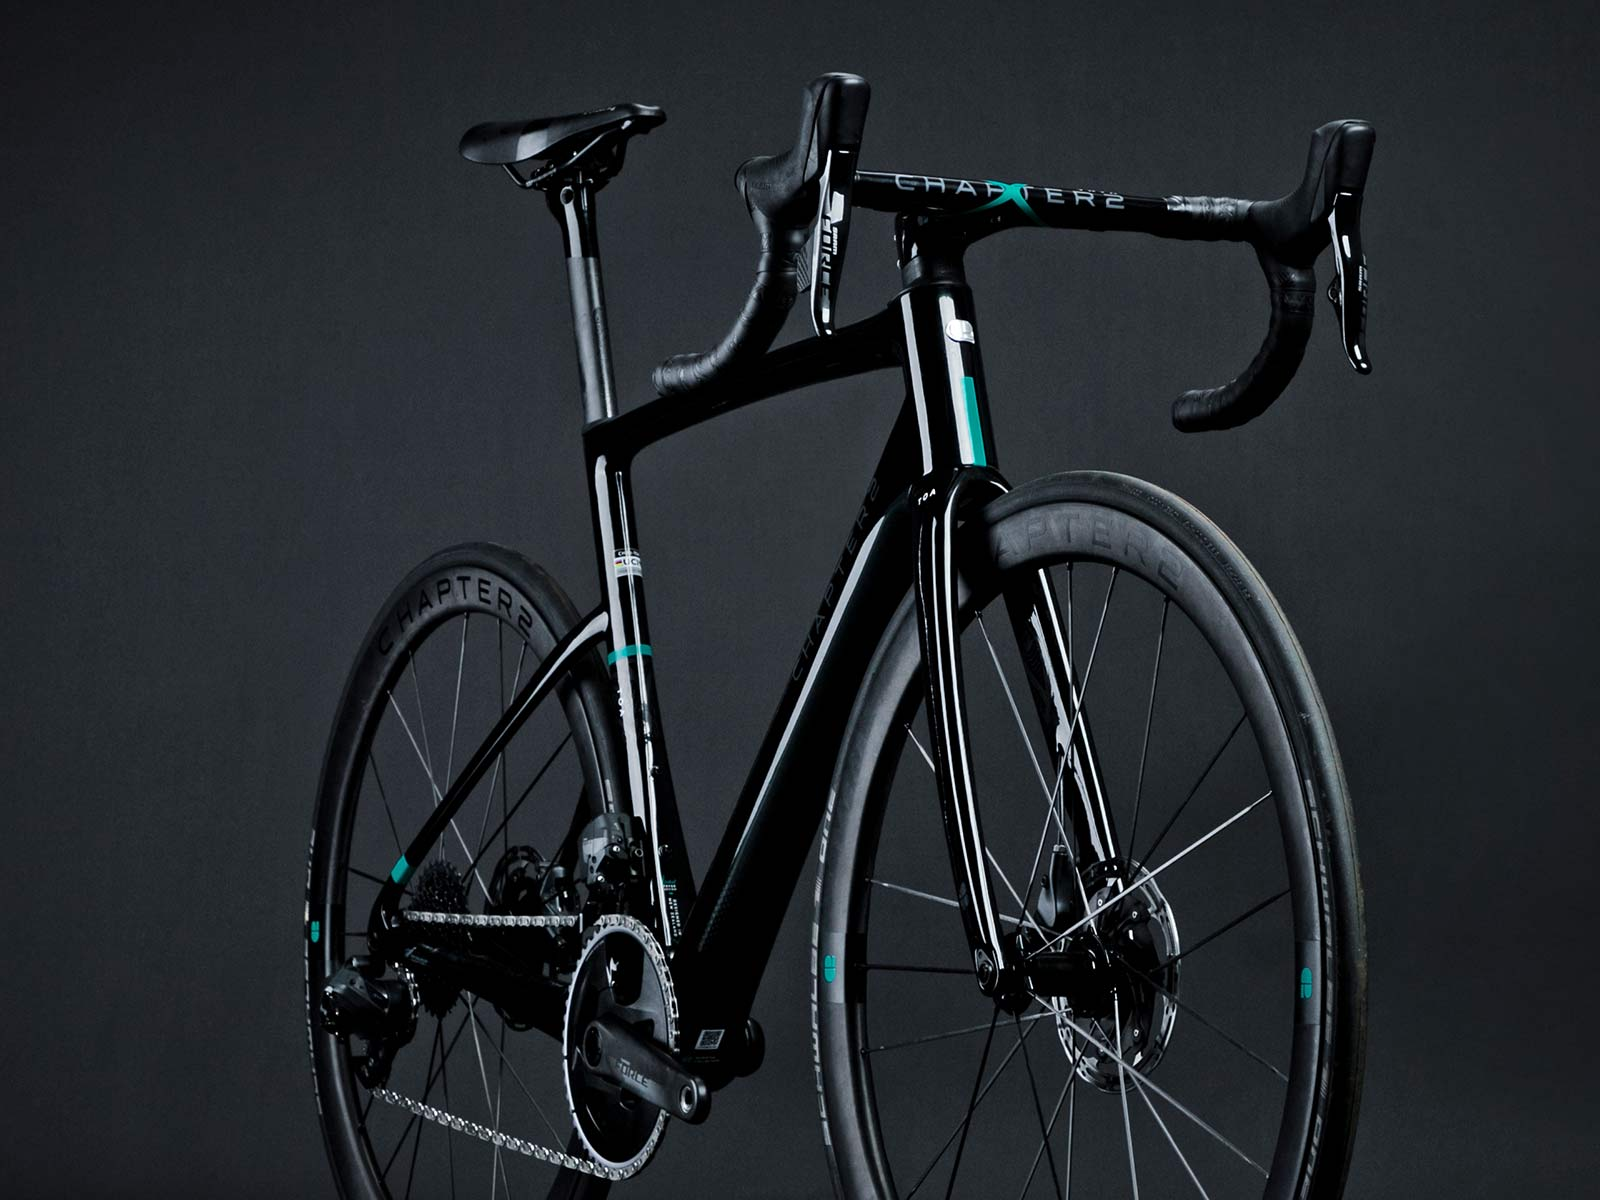 Chapter2 TOA all-road bike, fully integrated versatile aero carbon road bike, black angled complete